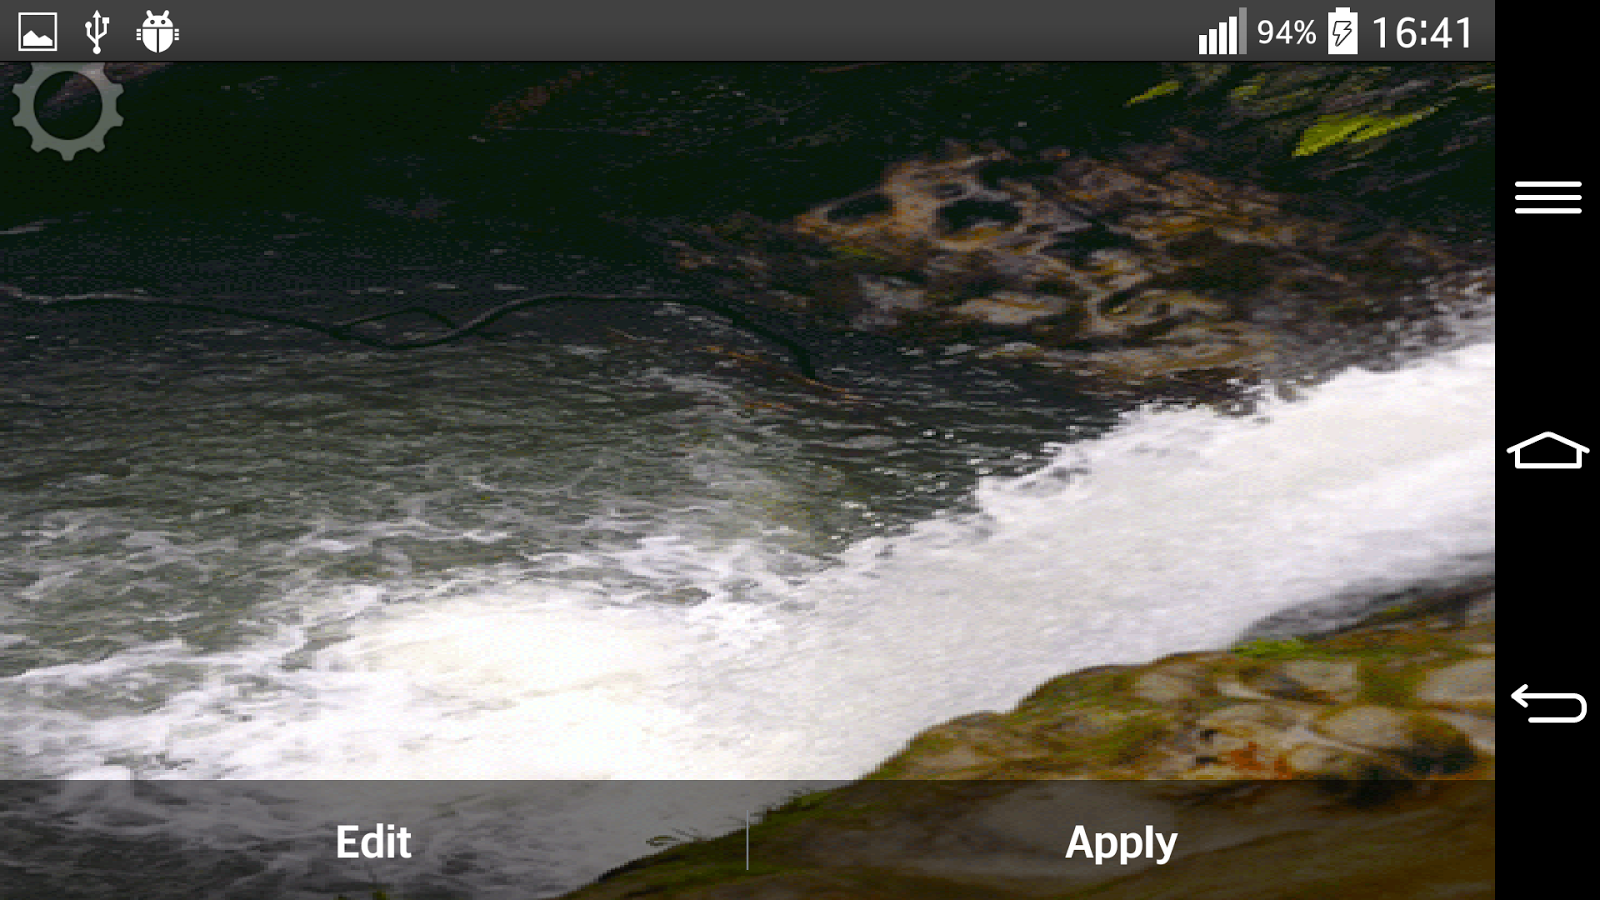 waterfall sound live wallpaper android apps on google play